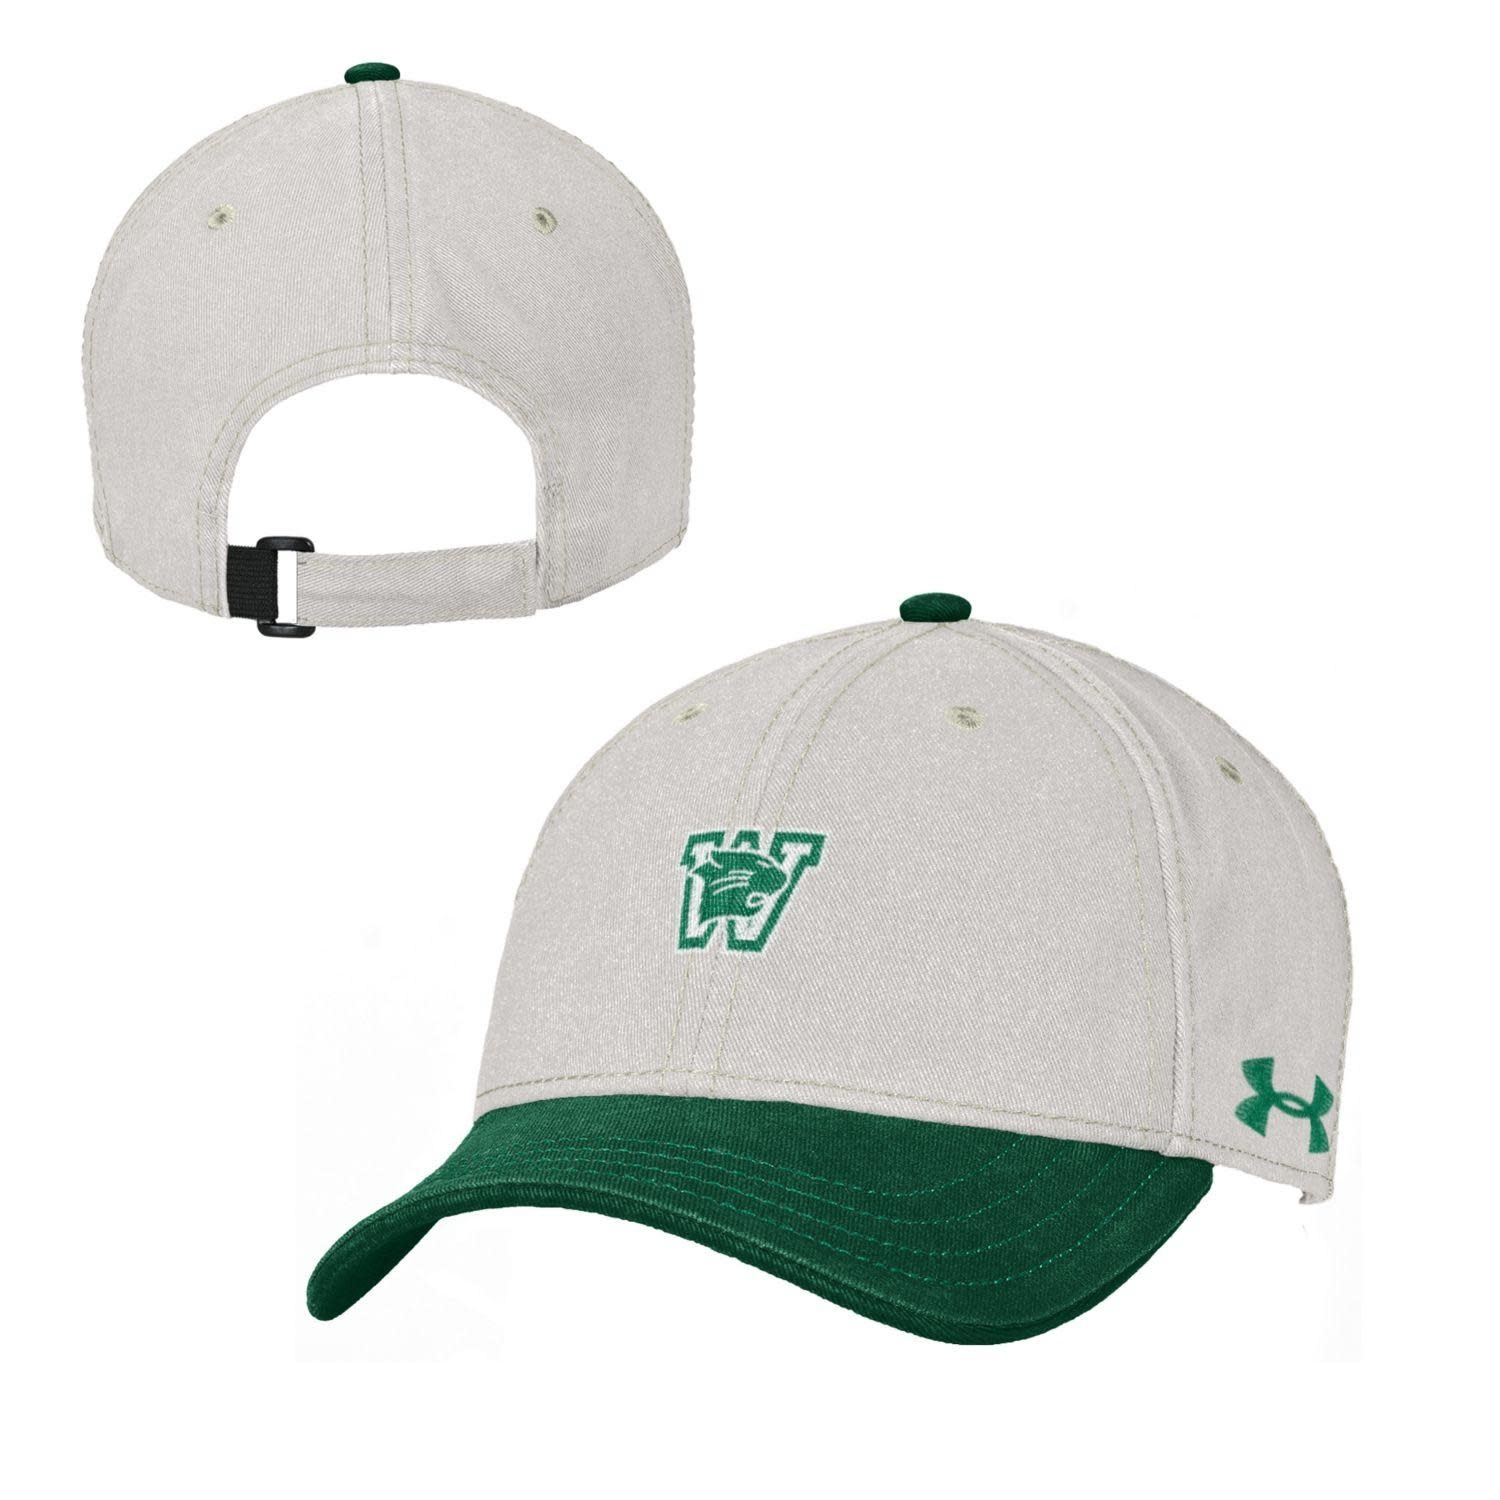 Hat: UA Youth OS Free Fit Stone with Green Visor and Green Button